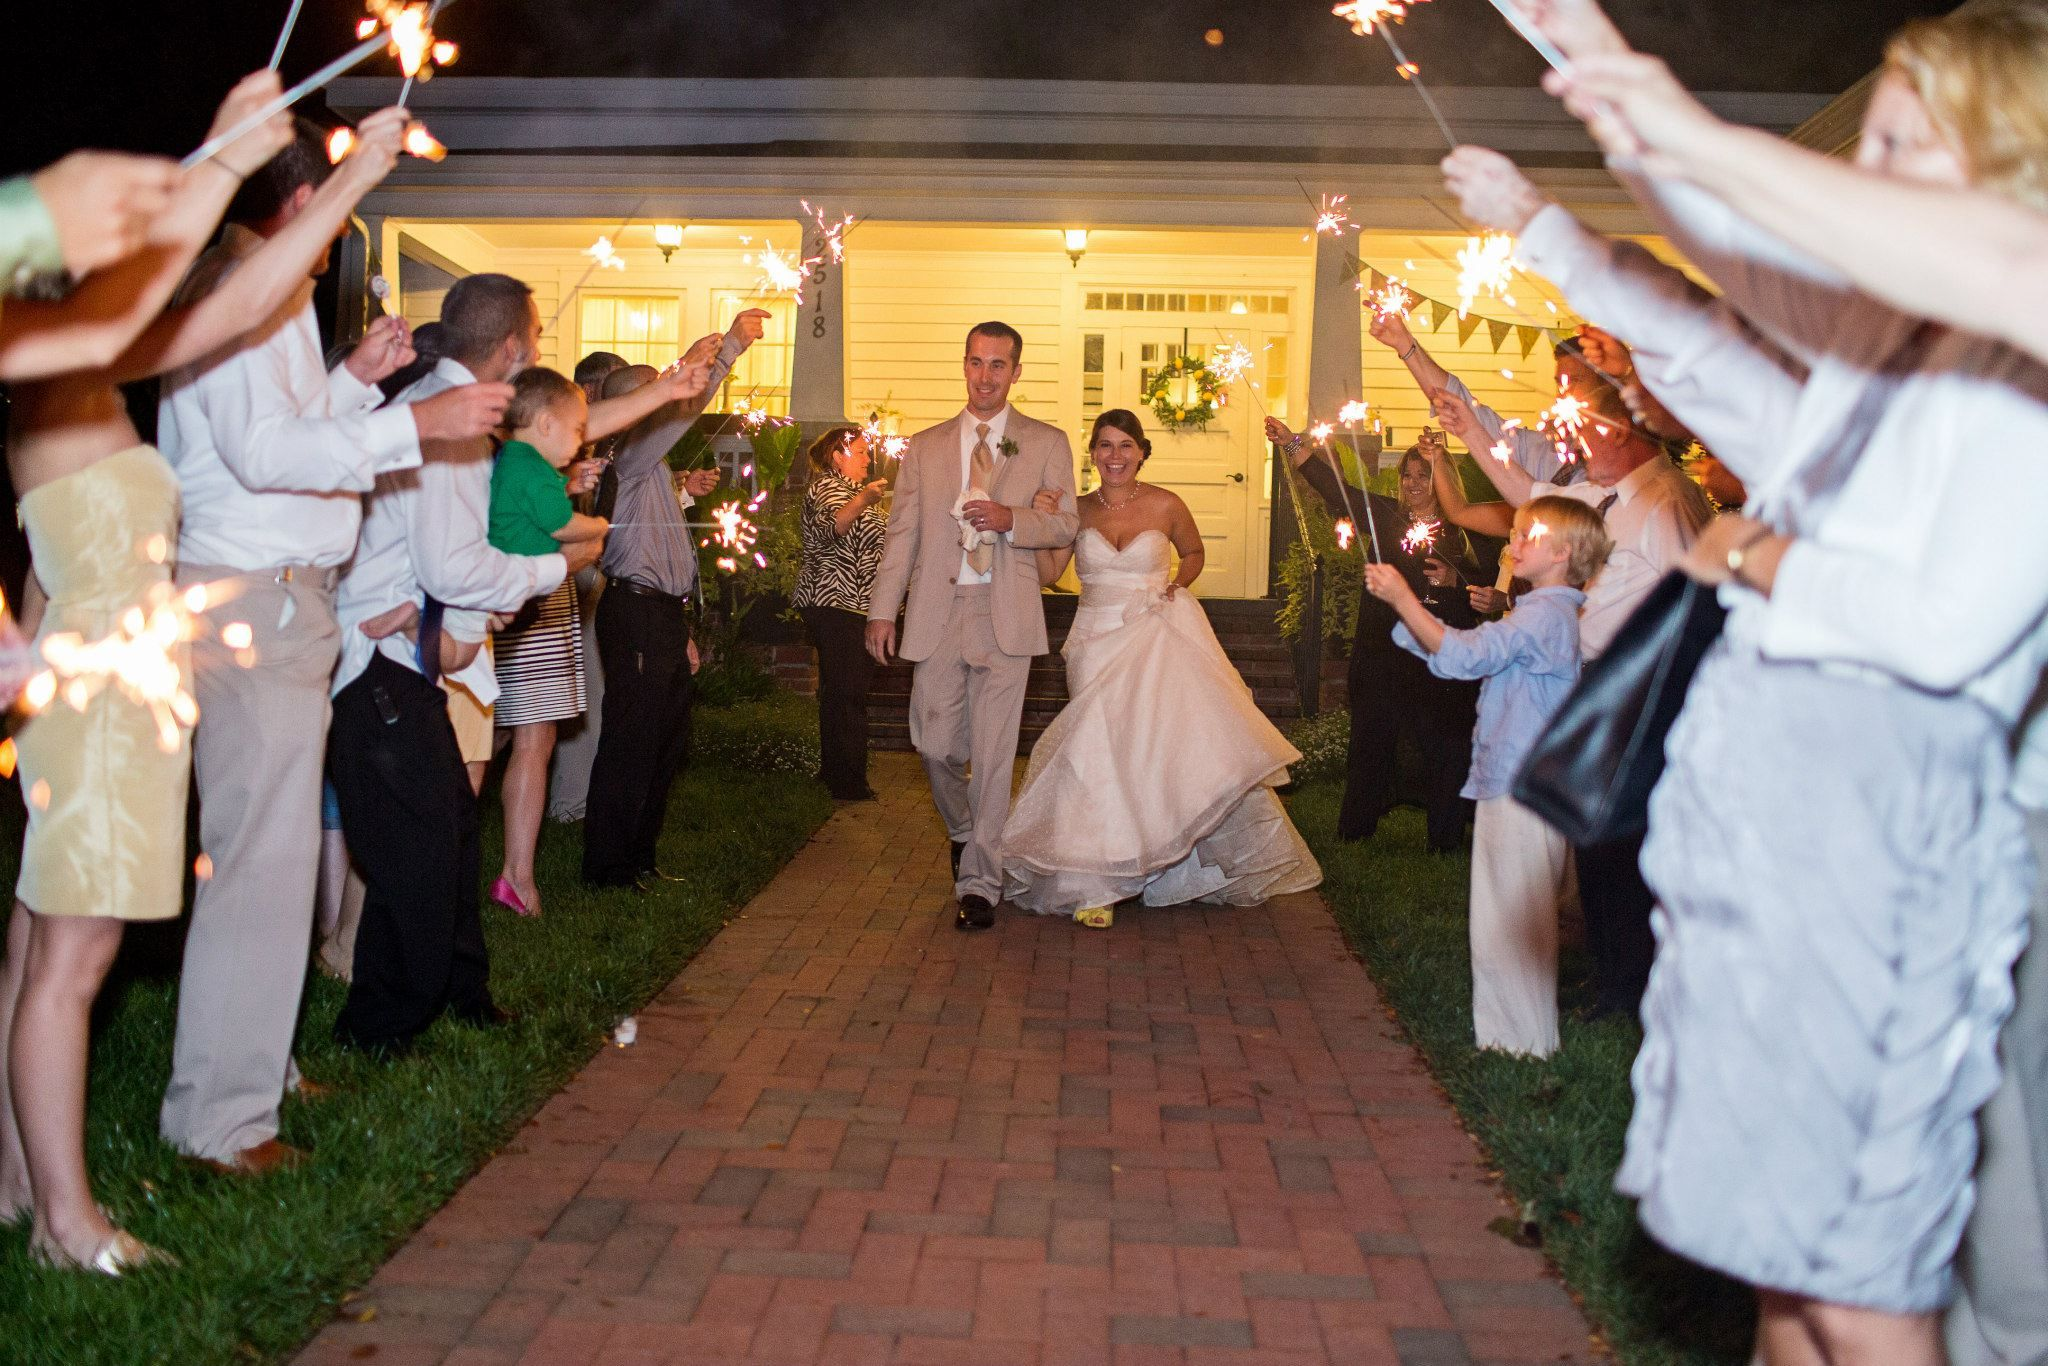 Wedding Photos From Rand Bryan House Outdoor Wedding Venue The